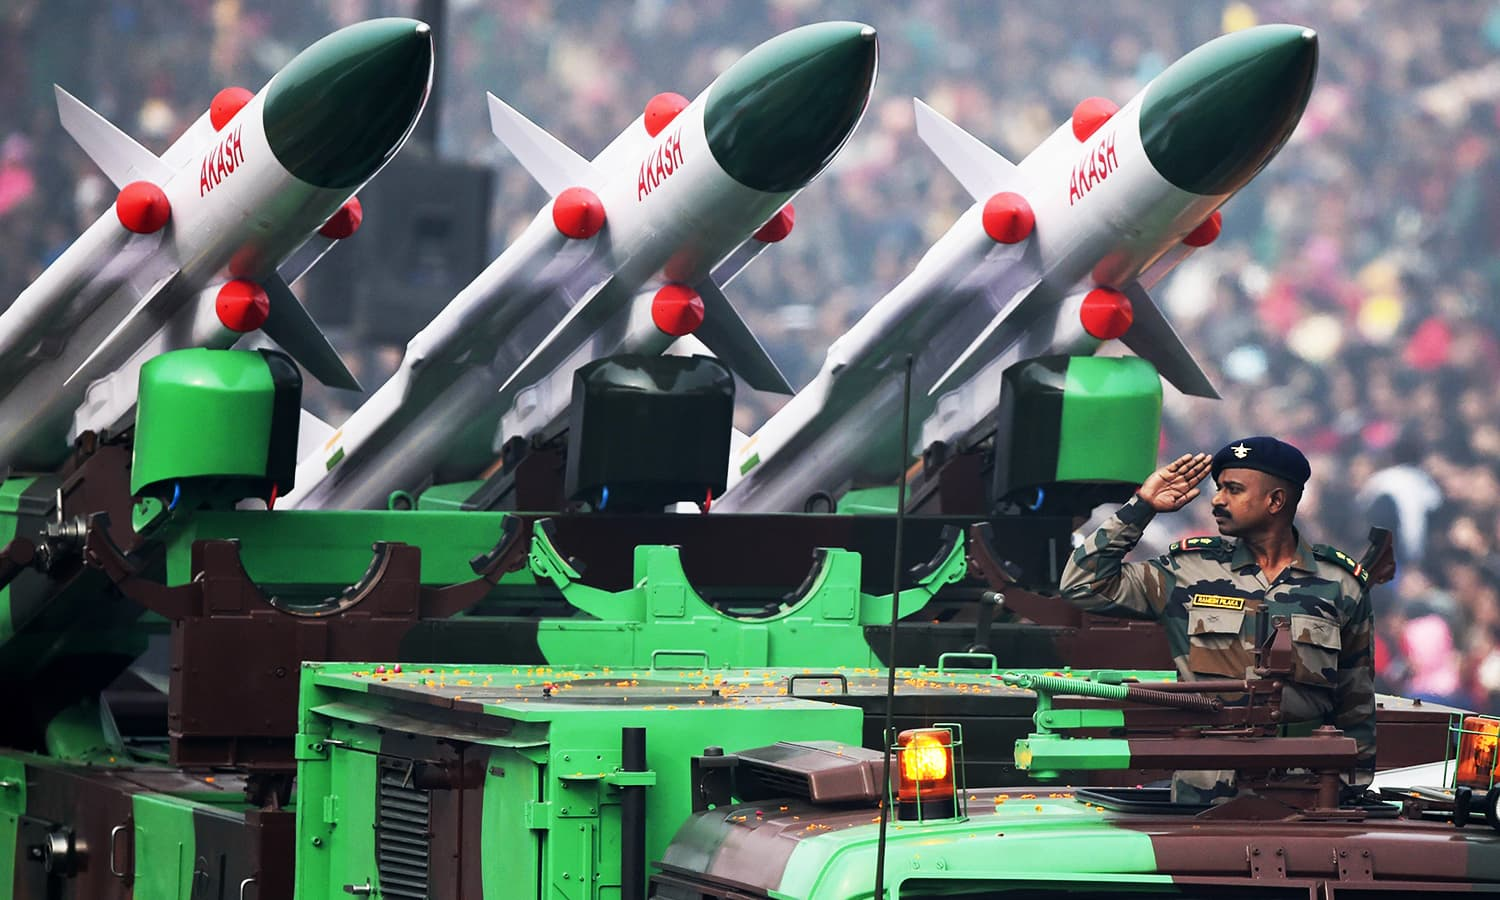 An Indian soldier salutes as he rides an Akash weapon system of air defence during India's Republic Day parade. ─ AFP